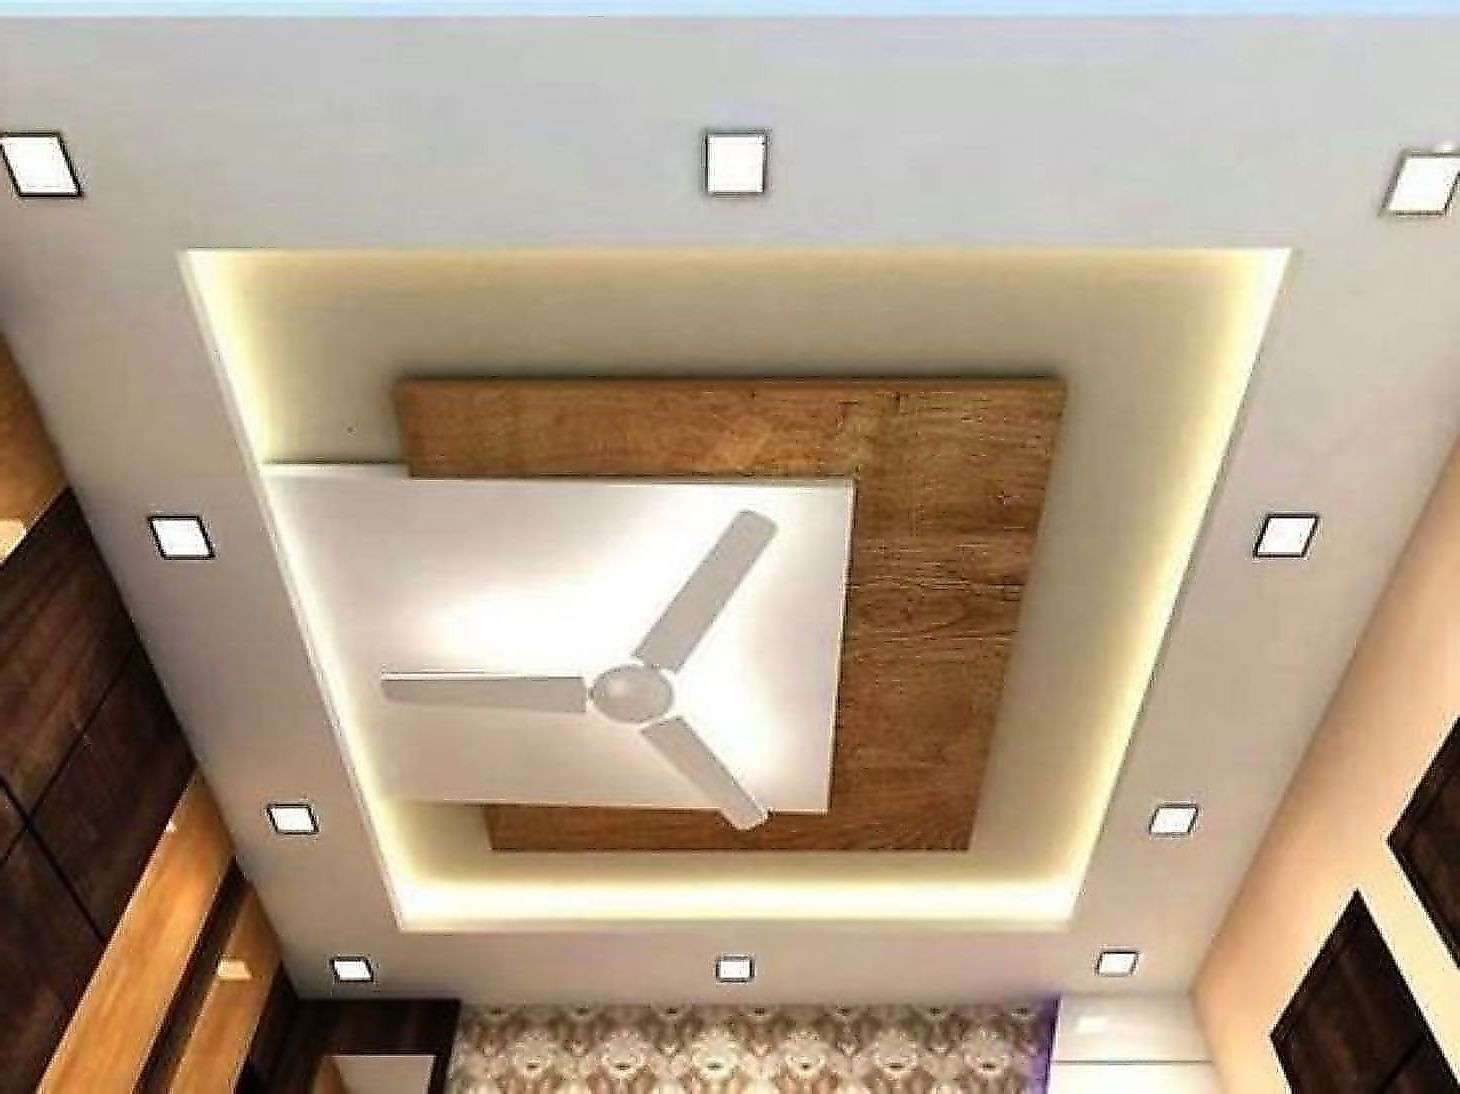 46 Awesome Modern Mid Century Kitchen Remodel Ideas In 2020 Ceiling Design Living Room Ceiling Design Modern Drawing Room Ceiling Design